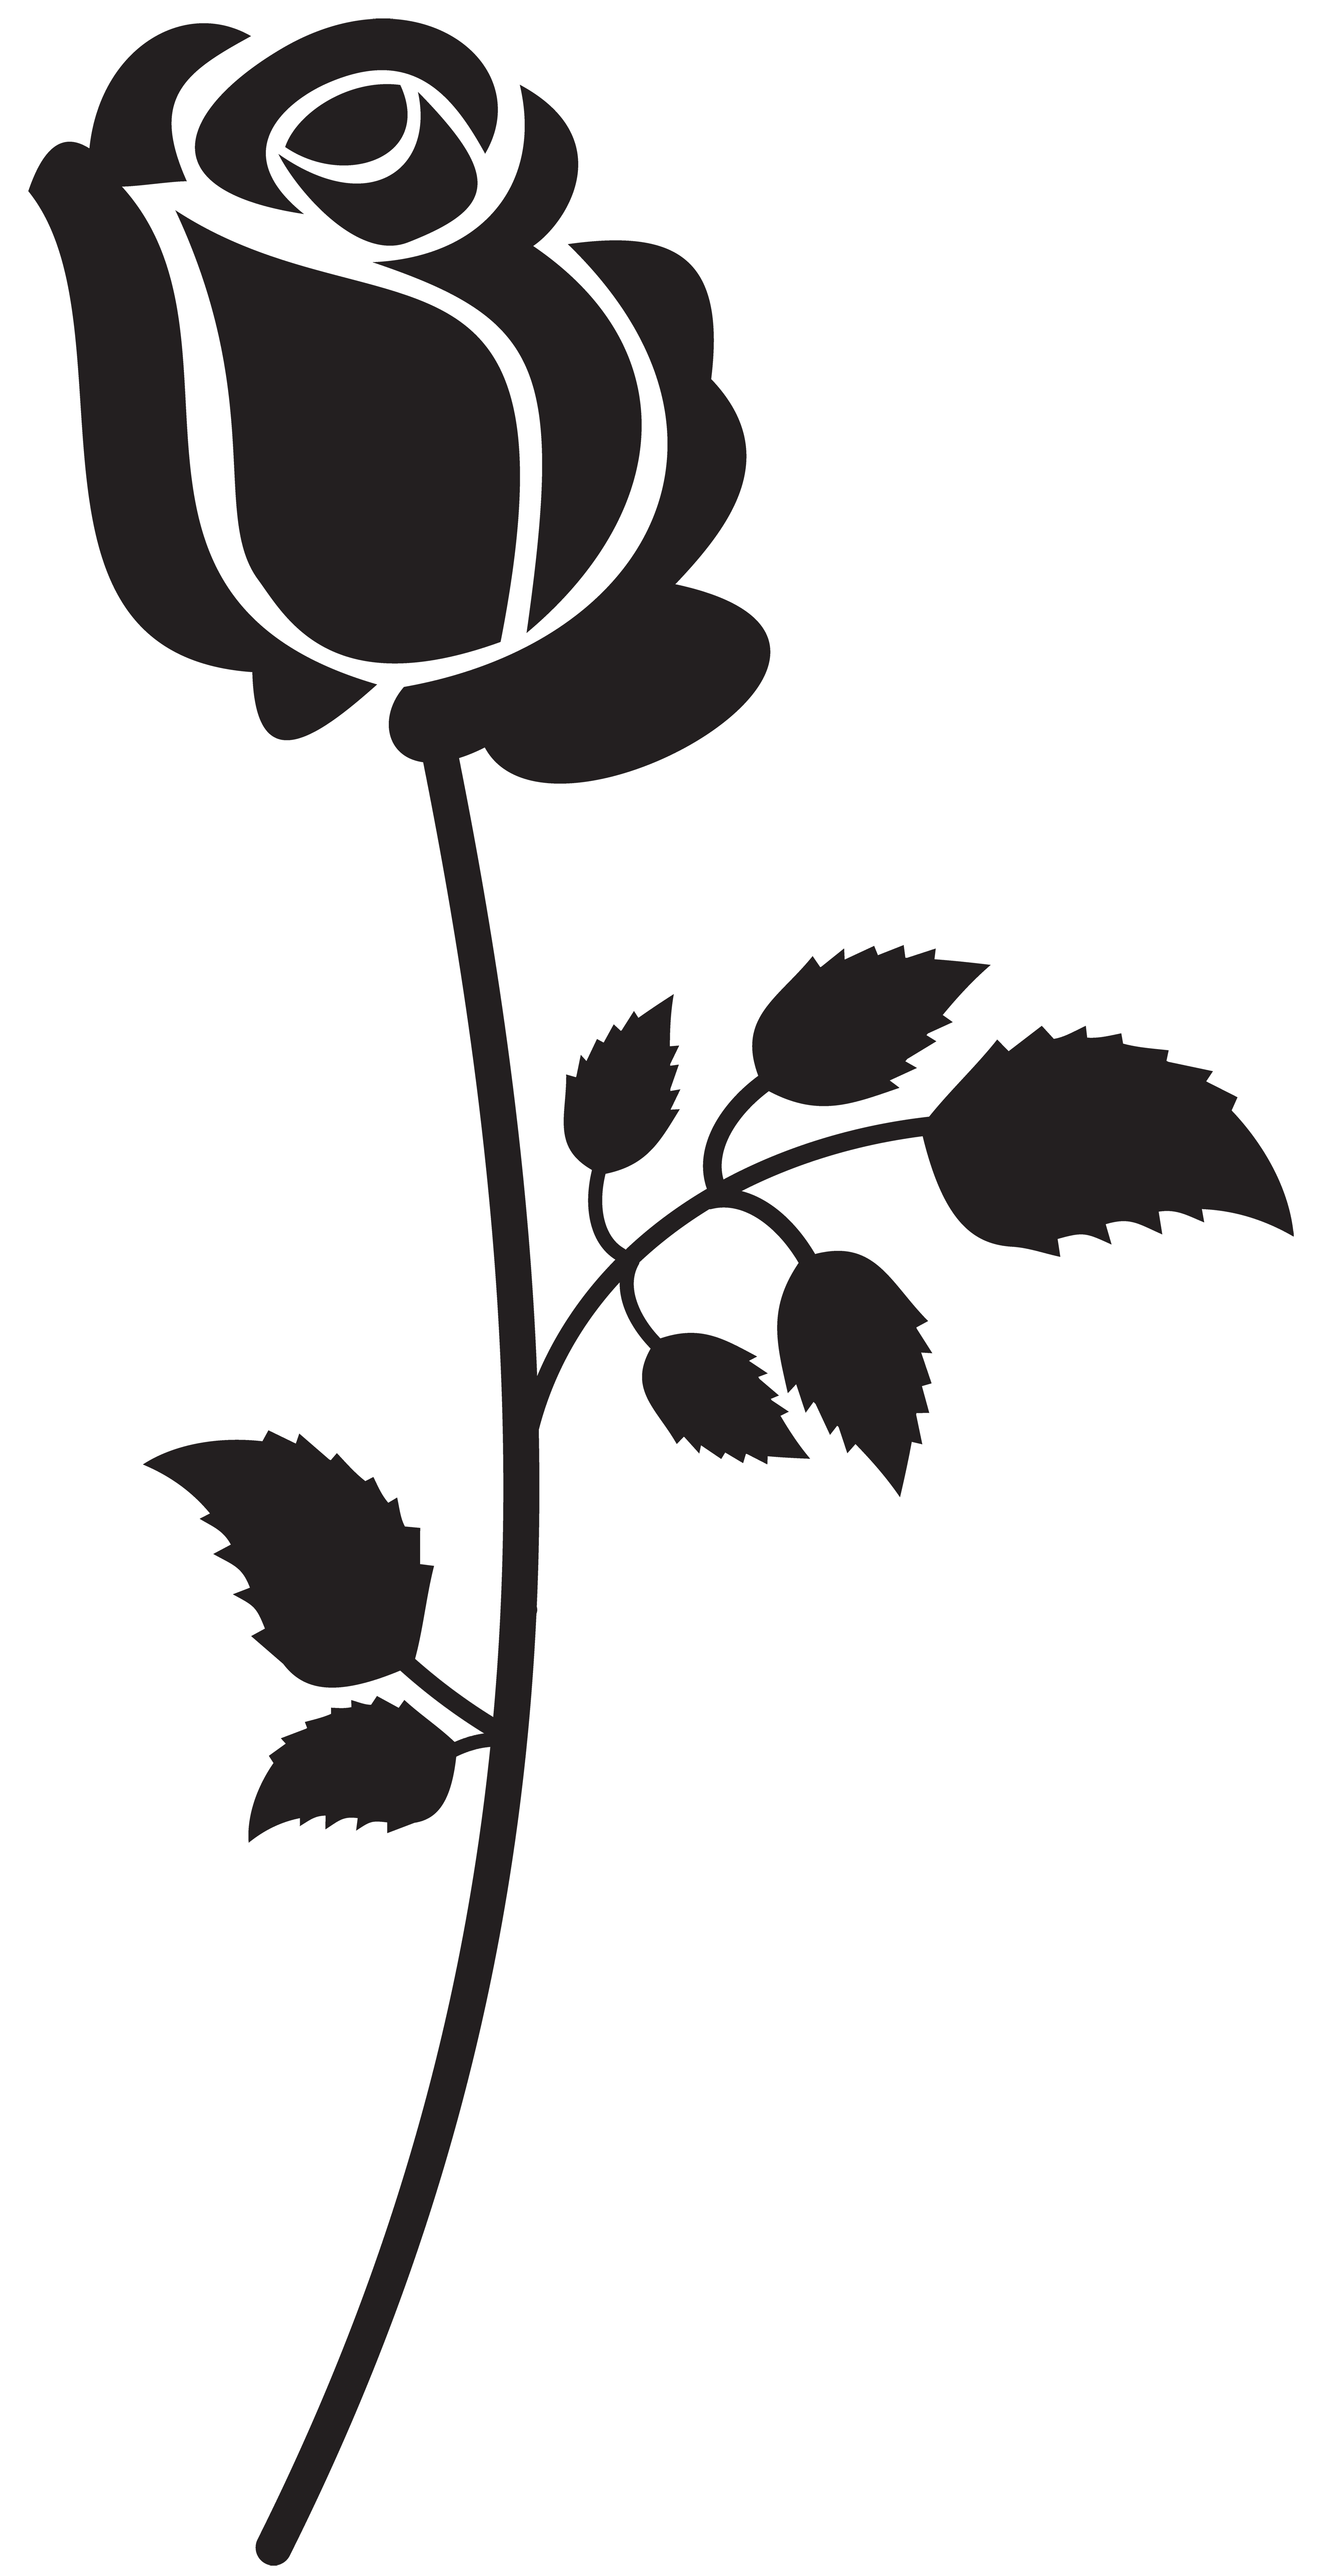 Svg silhouette rose. Png clip art image